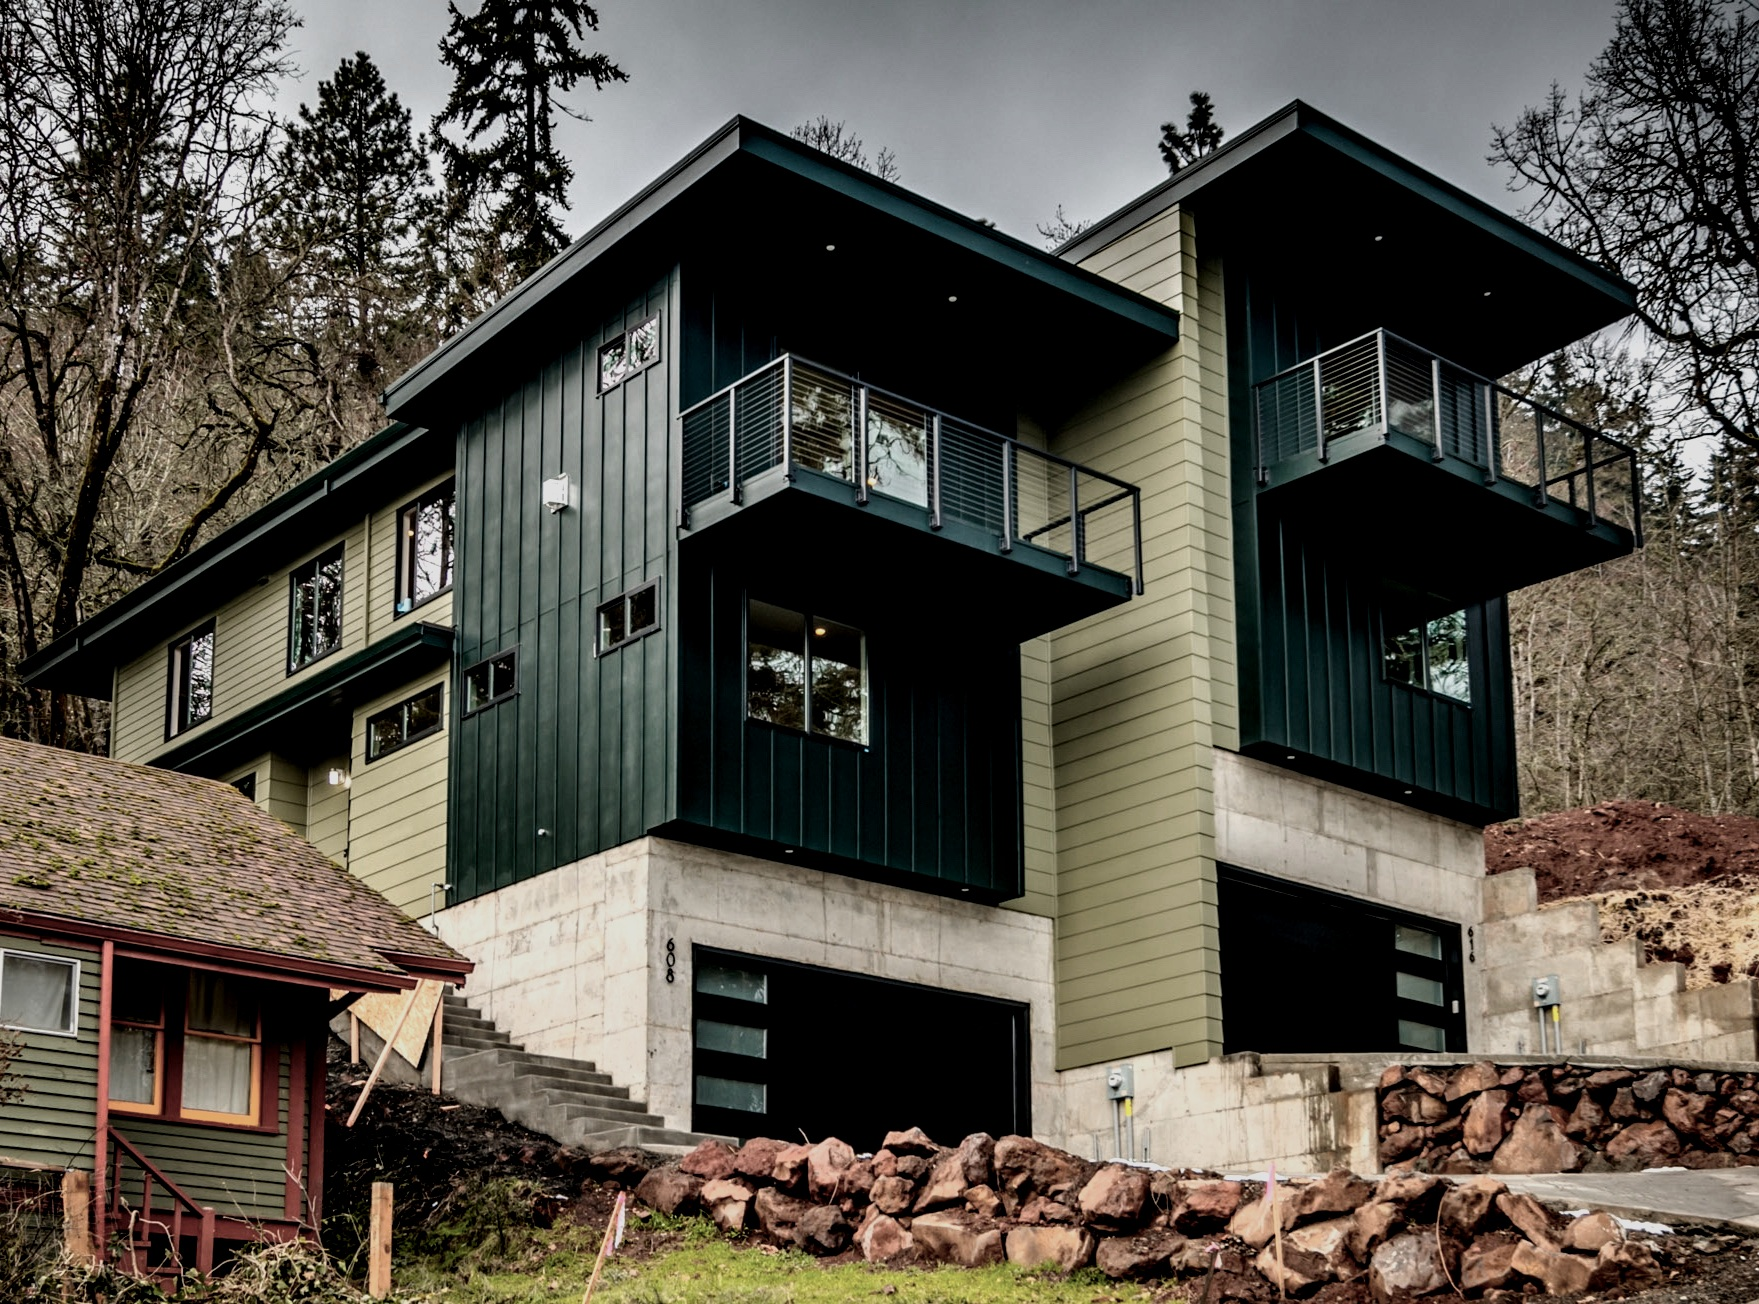 Attached townhomes in White Salmon, Washington. Black Forest Green and Tate Olive by Benjamin Moore were chosen to reflect the natural surroundings.